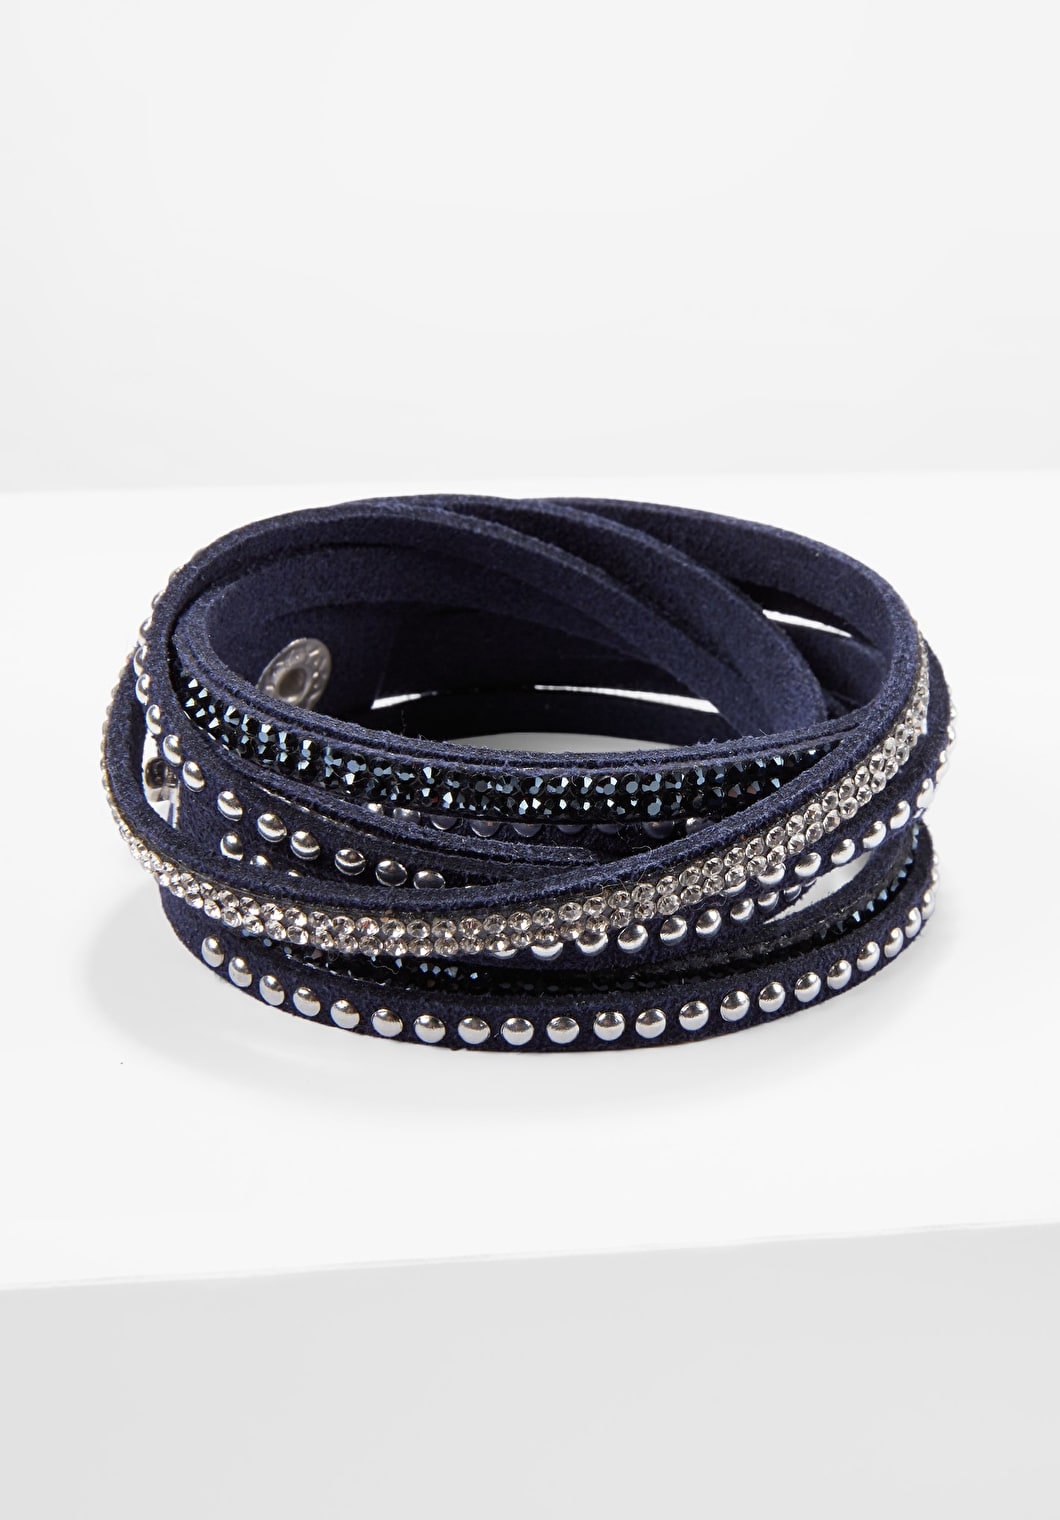 Wrap around crystal bracelet with studs in a stunning navy faux suede colour